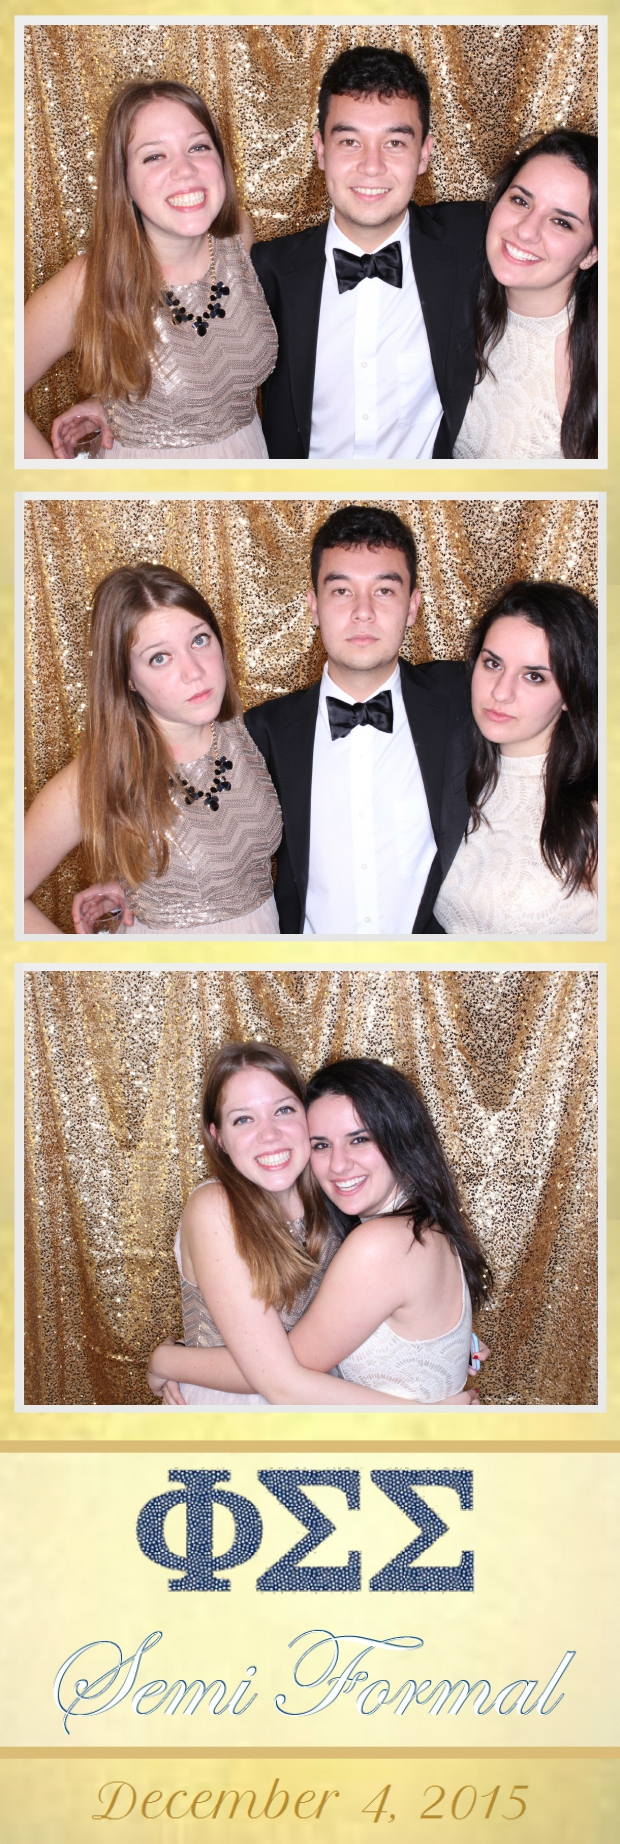 Guest House Events Photo Booth Phi Sigma Sigma Semi Formal (57).jpg